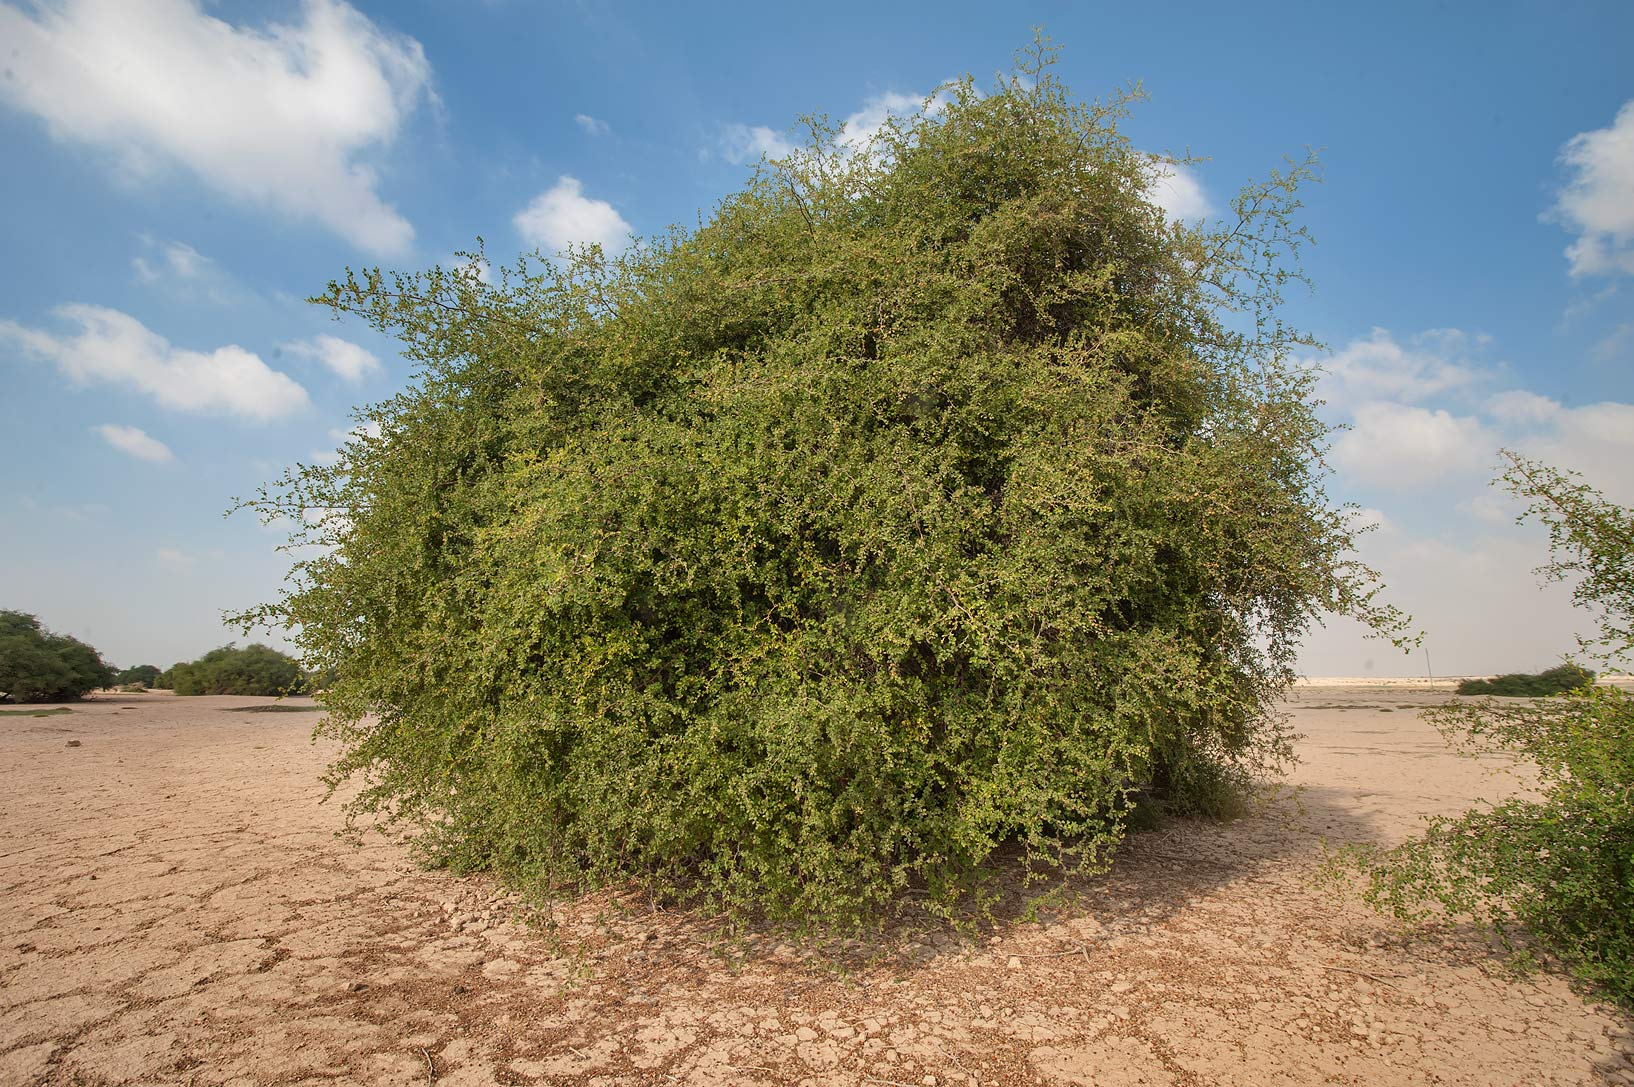 A tree of Ziziphus nummularia in a silty...Nuaman (Numan) in north-western Qatar